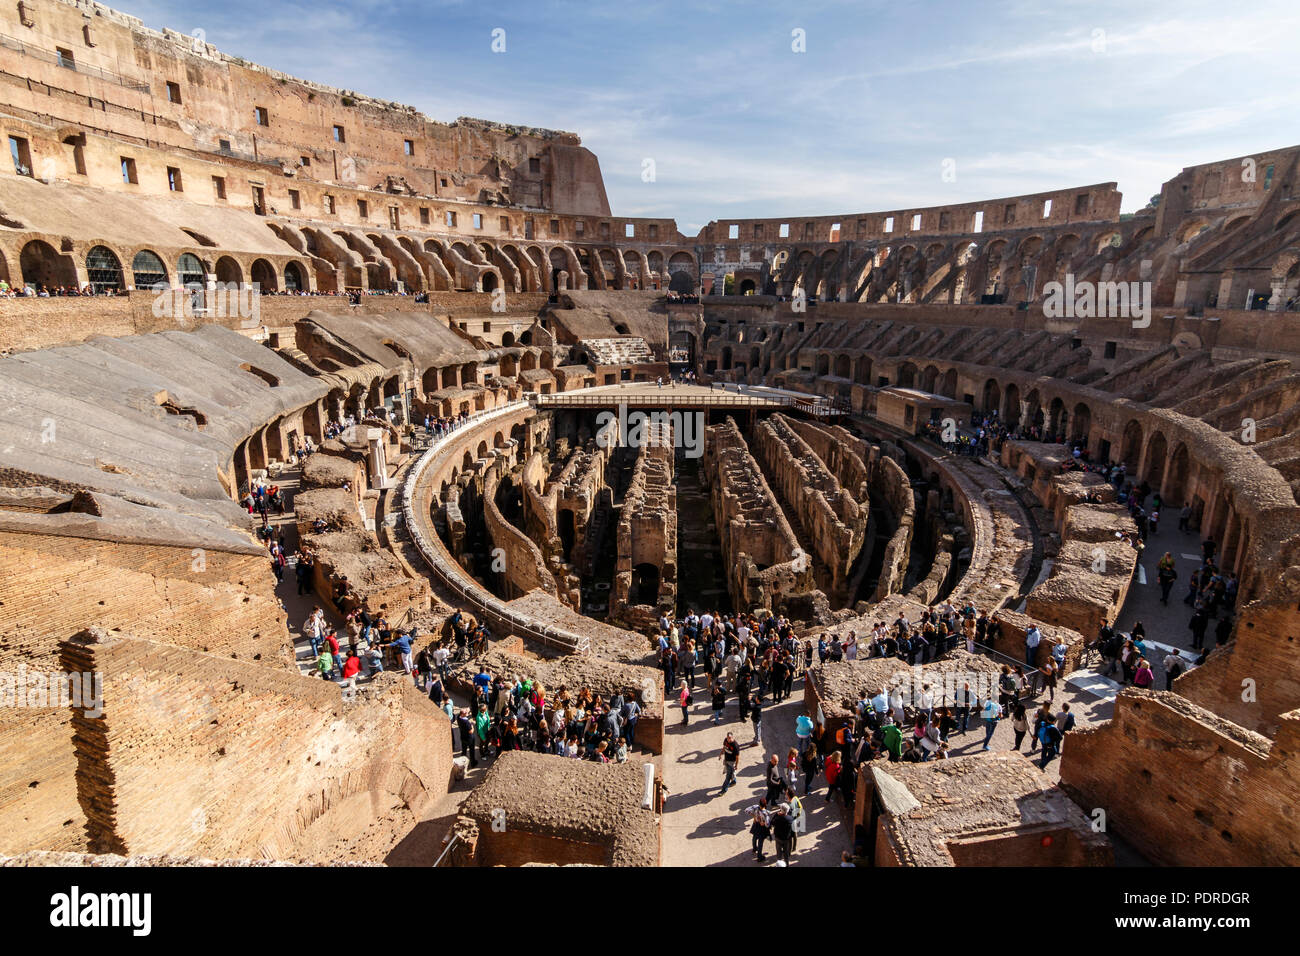 Interior view of the Coliseum of Rome, Italy. UNESCO World Heritage Site. - Stock Image